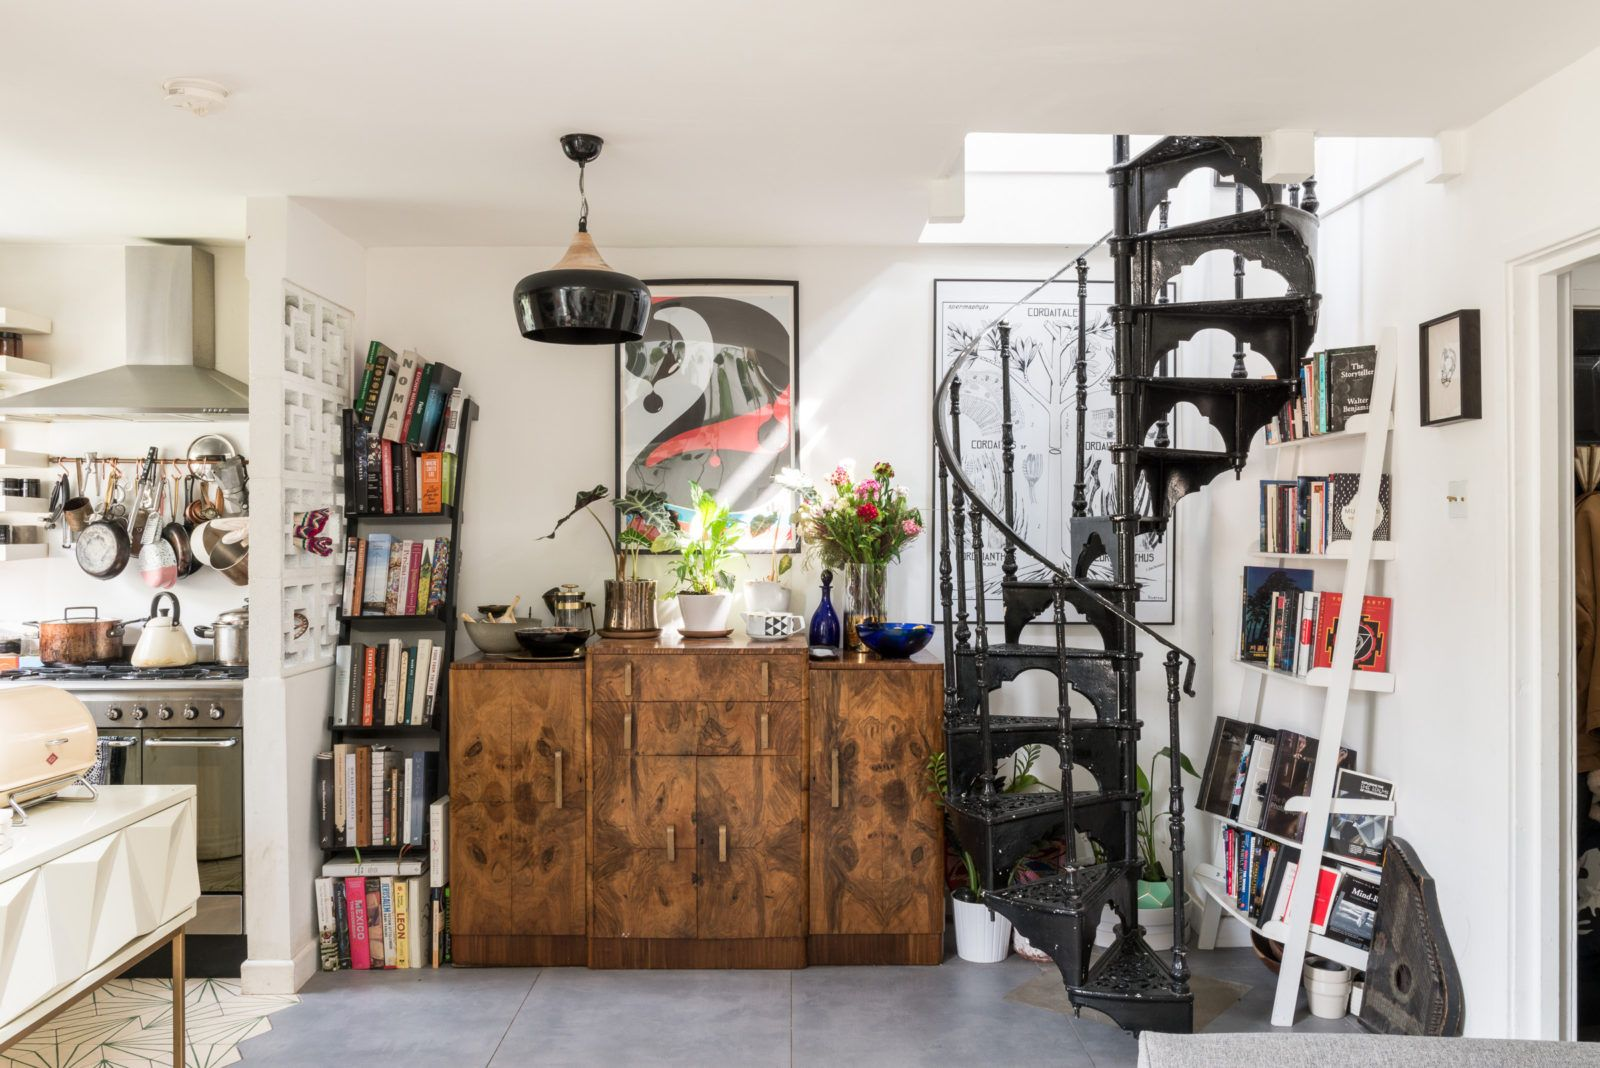 A Bright and Cozy Attic Apartment in London | London ...